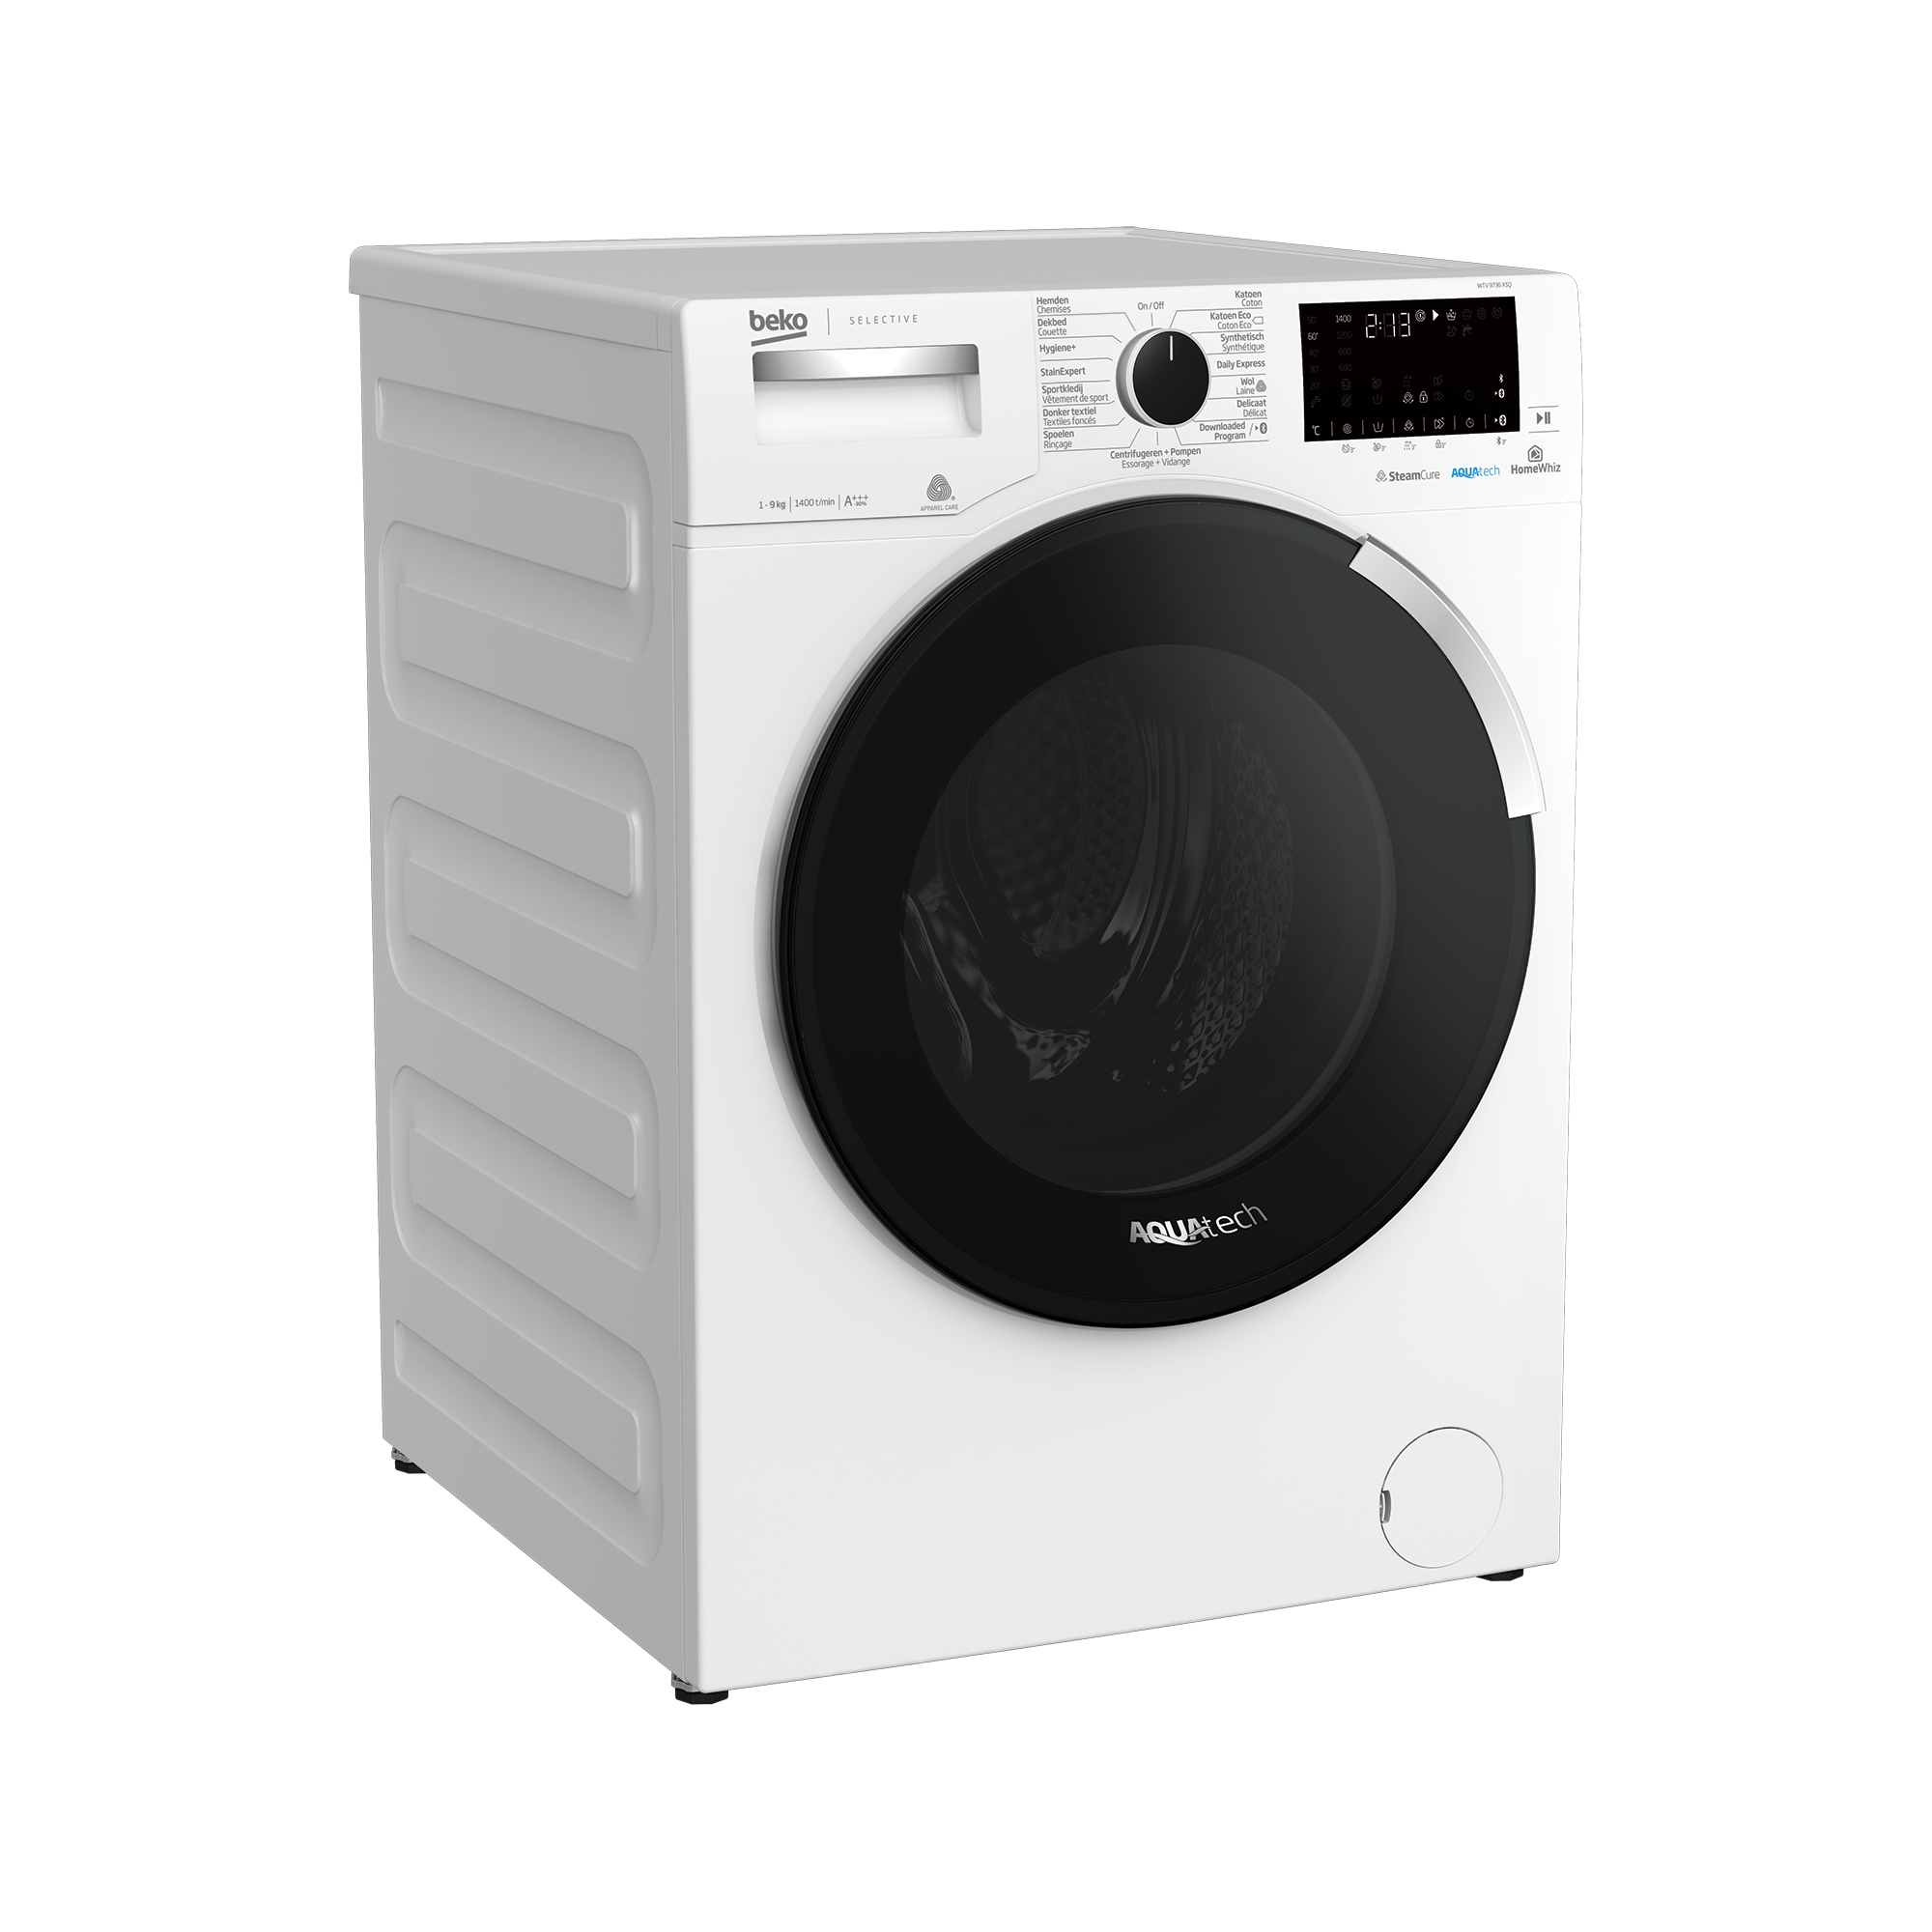 Freestanding Washing Machine (9 kg, 1400 rpm) WTV 9736 XSQ